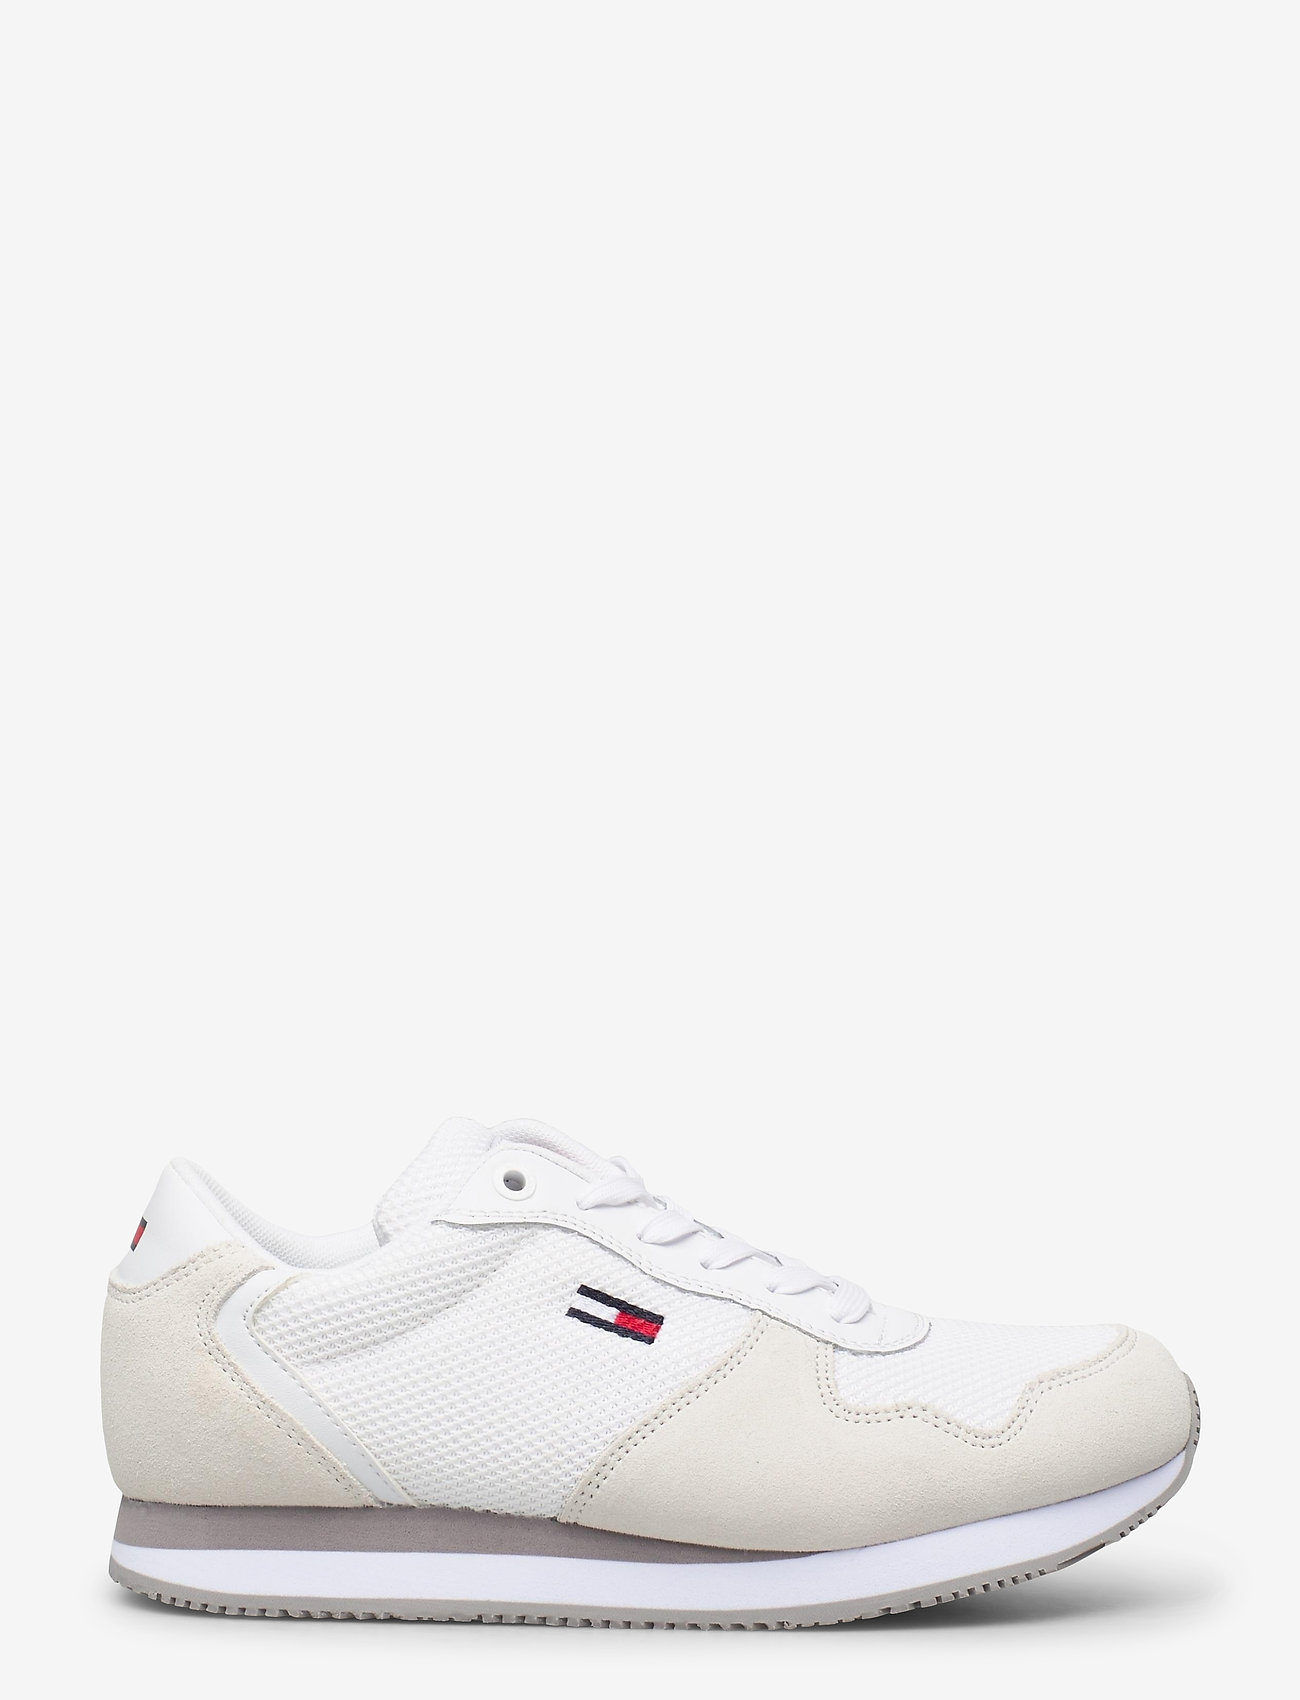 Tommy Hilfiger - TOMMY JEANS MONO SNEAKER - low top sneakers - white - 1